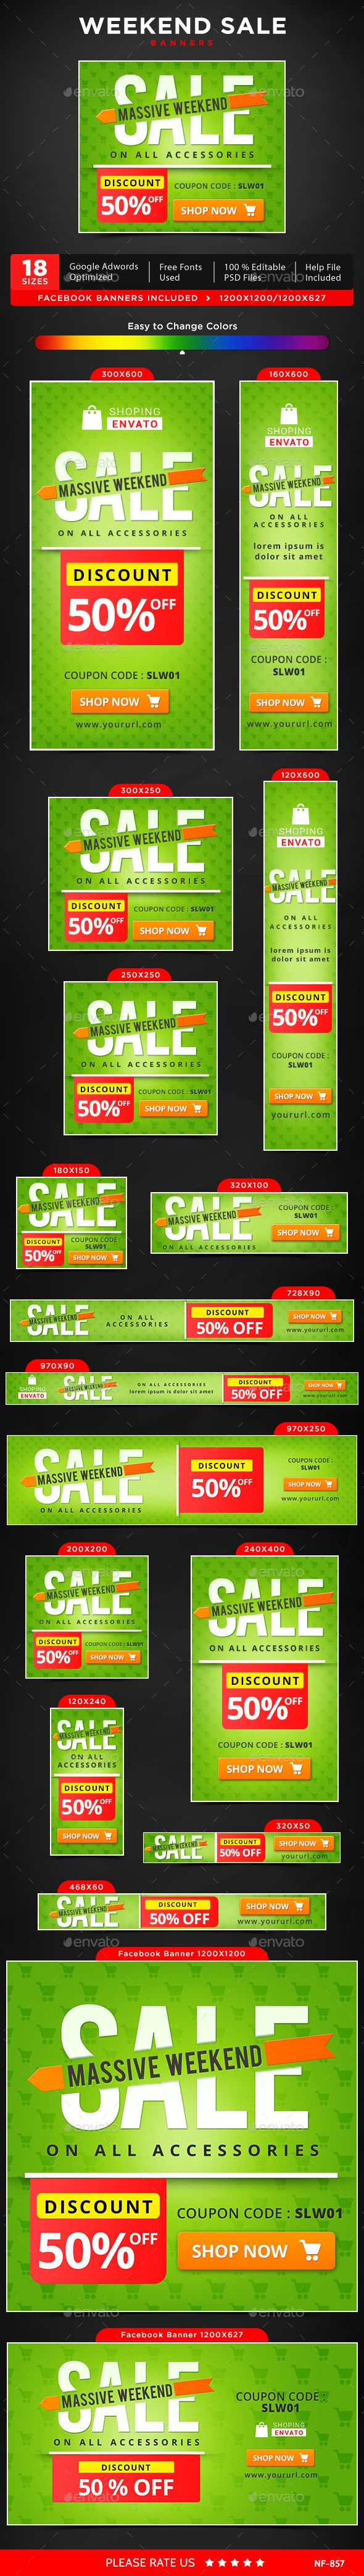 Weekend Sale Web Banners Template PSD #design #ads Download: http://graphicriver.net/item/weekend-sale-banners/13876873?ref=ksioks